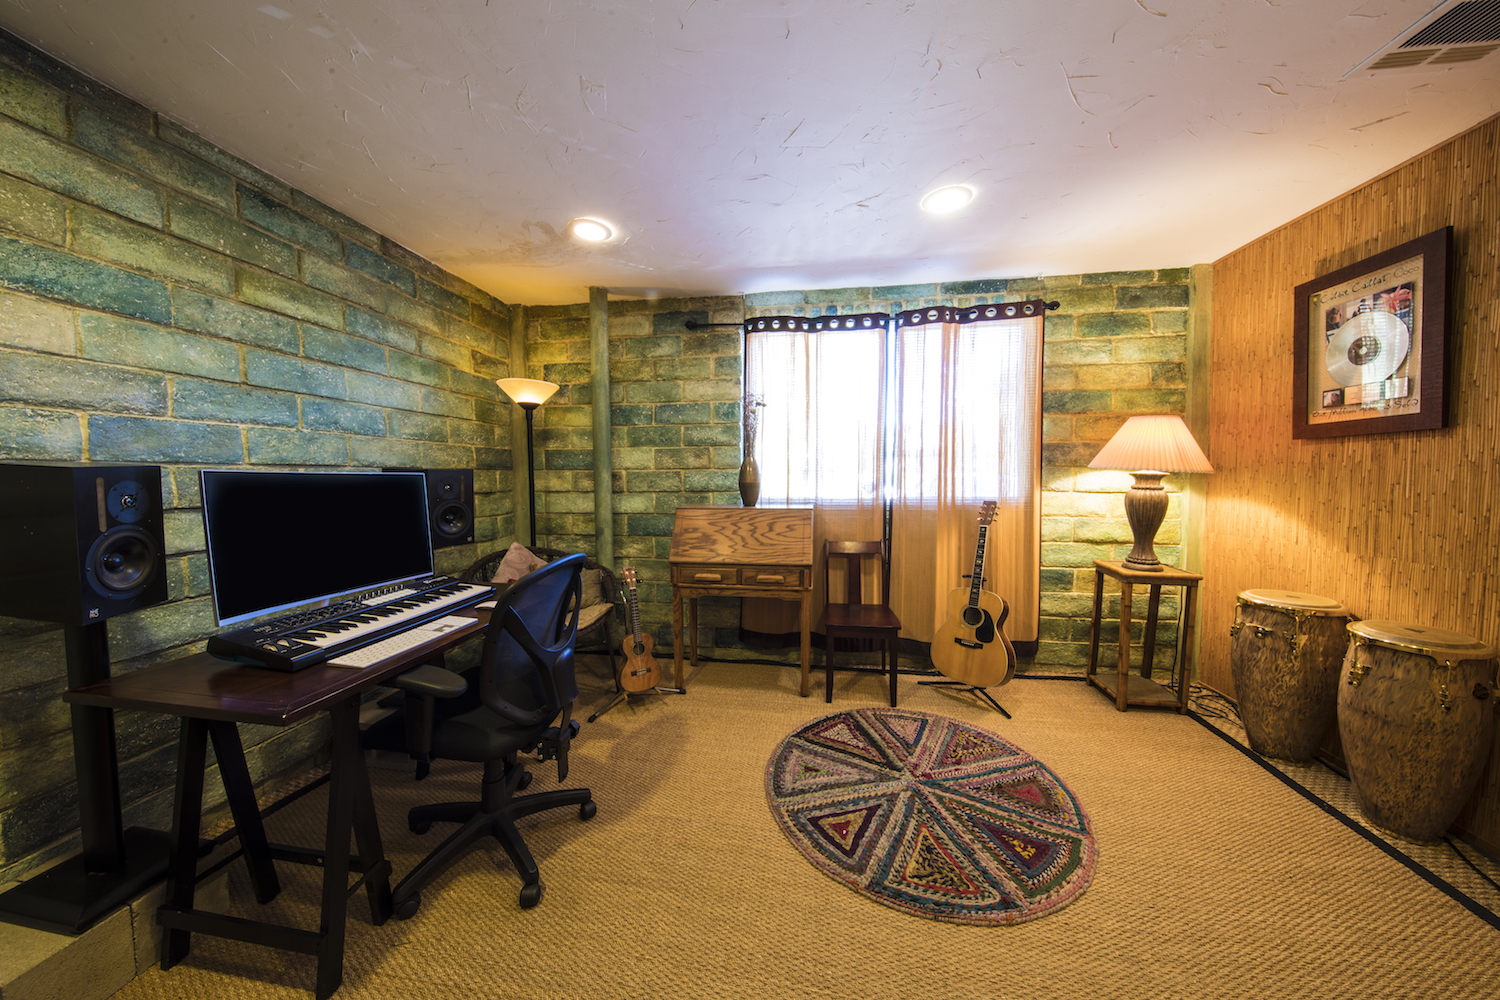 The KAUAI Room - Relax and go with the island feel of sand and seagrass in Kauai. Inspired by studio manager Mikal's work with Colbie Caillat.